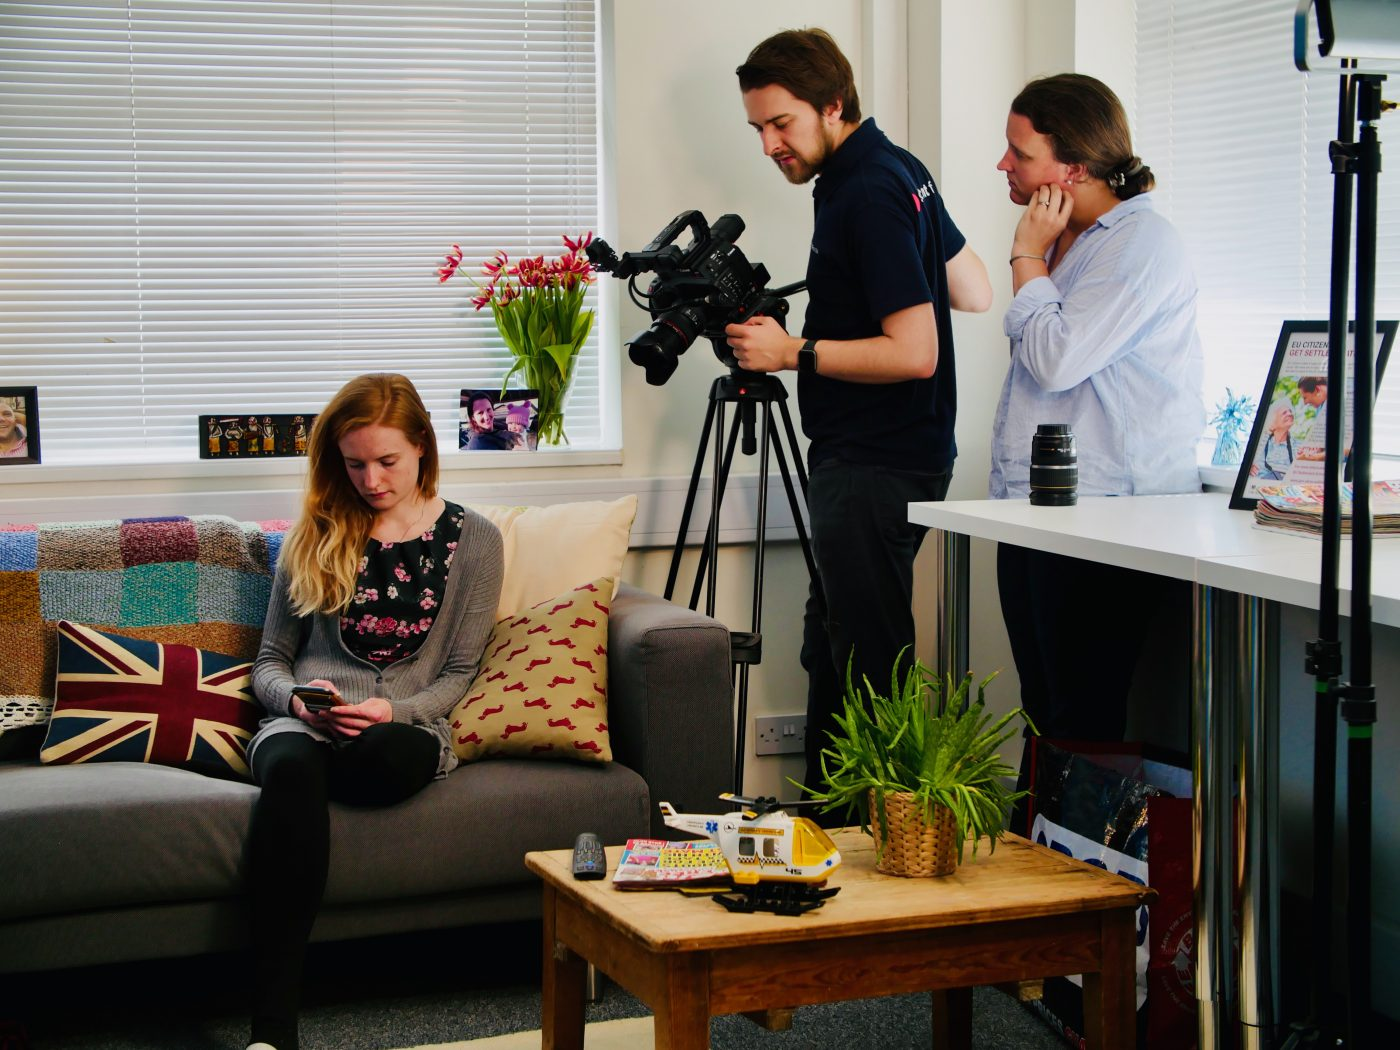 Filming for Care Friends, an app that helps care companies receive more job applications